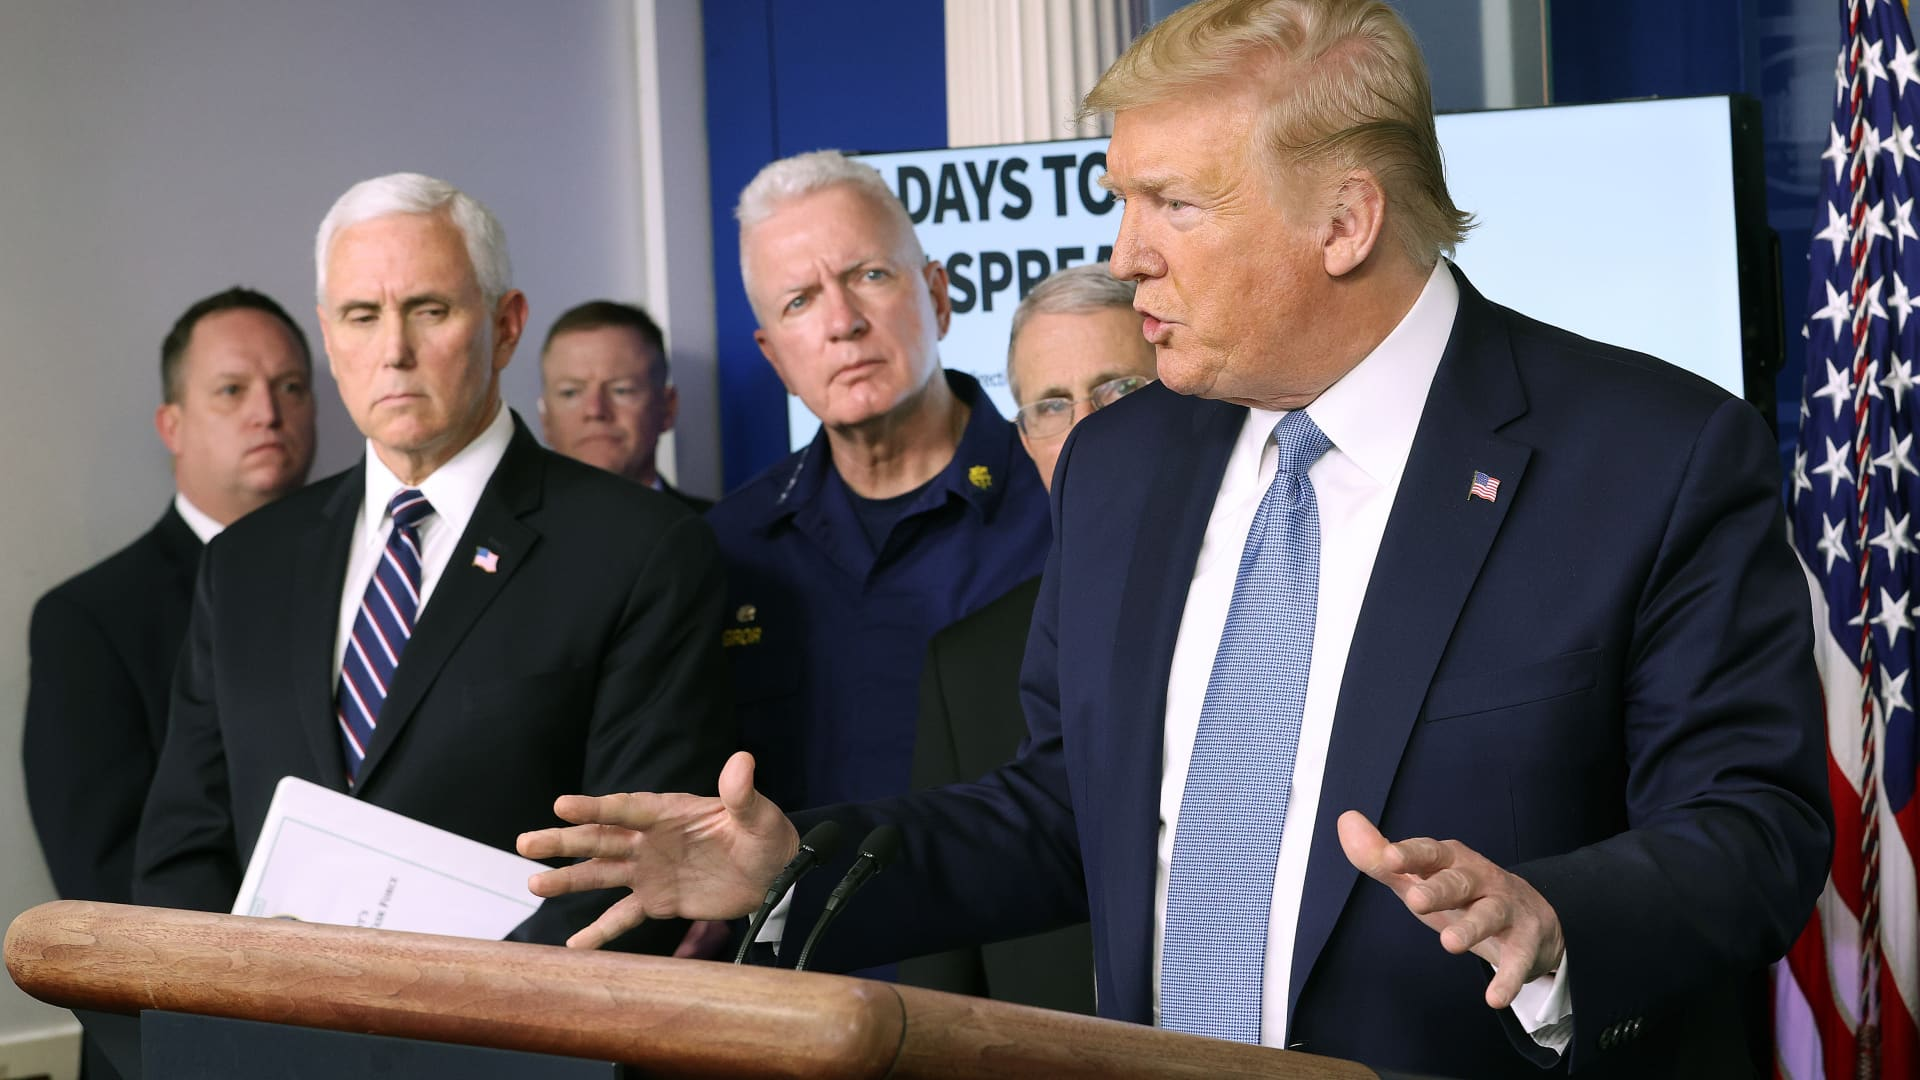 U.S. President Donald Trump is joined by members of the Coronavirus Task Force, while speaking about the Coronavirus, in the press briefing room at the White House on March 16, 2020 in Washington, DC.